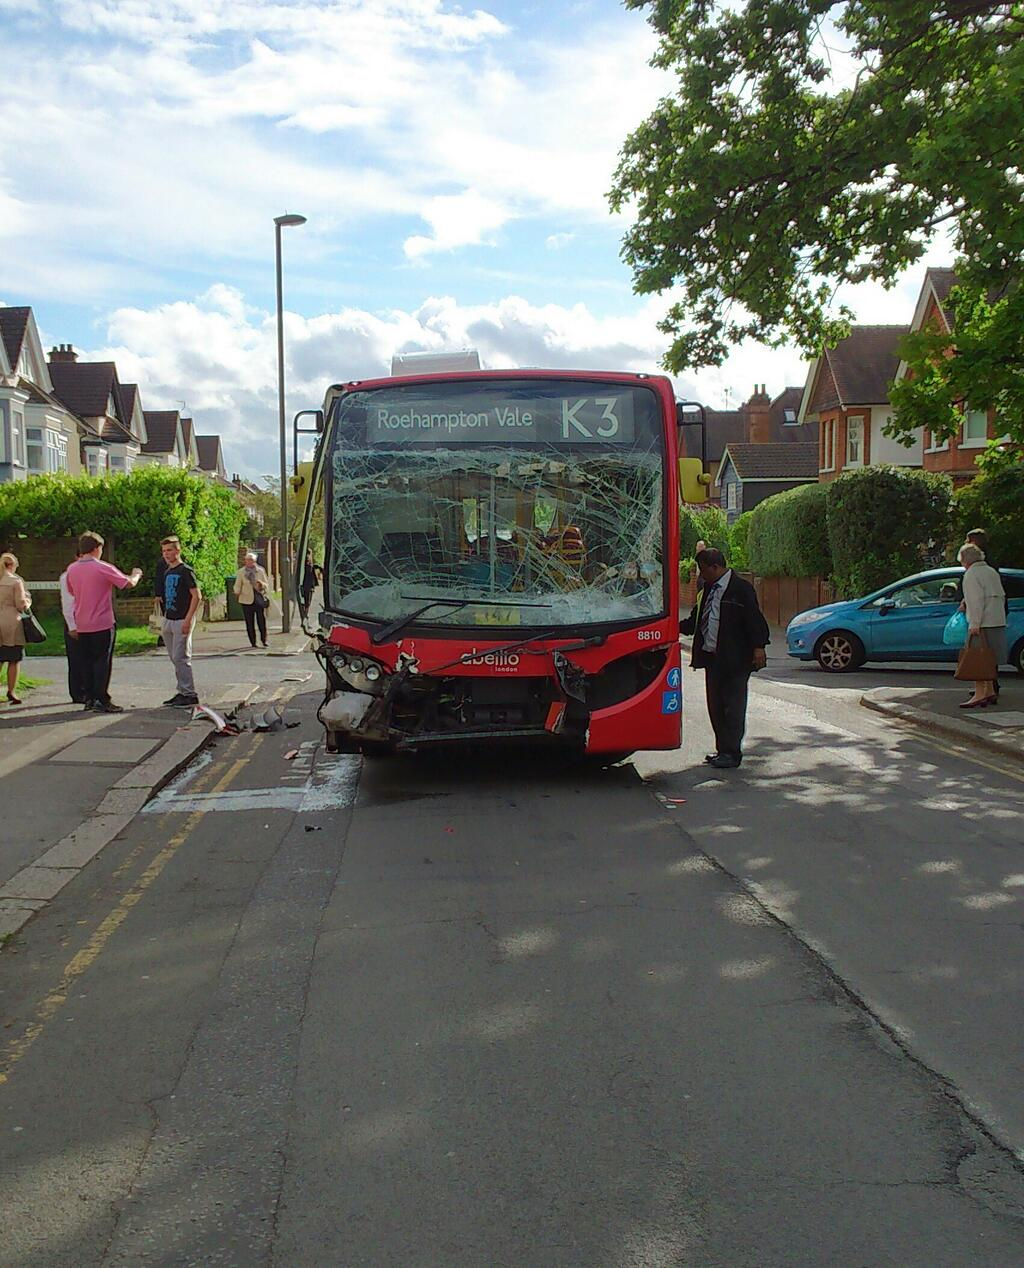 Bus smashes into van in Long Ditton leaving passengers stunned and 'person taken to hospital'